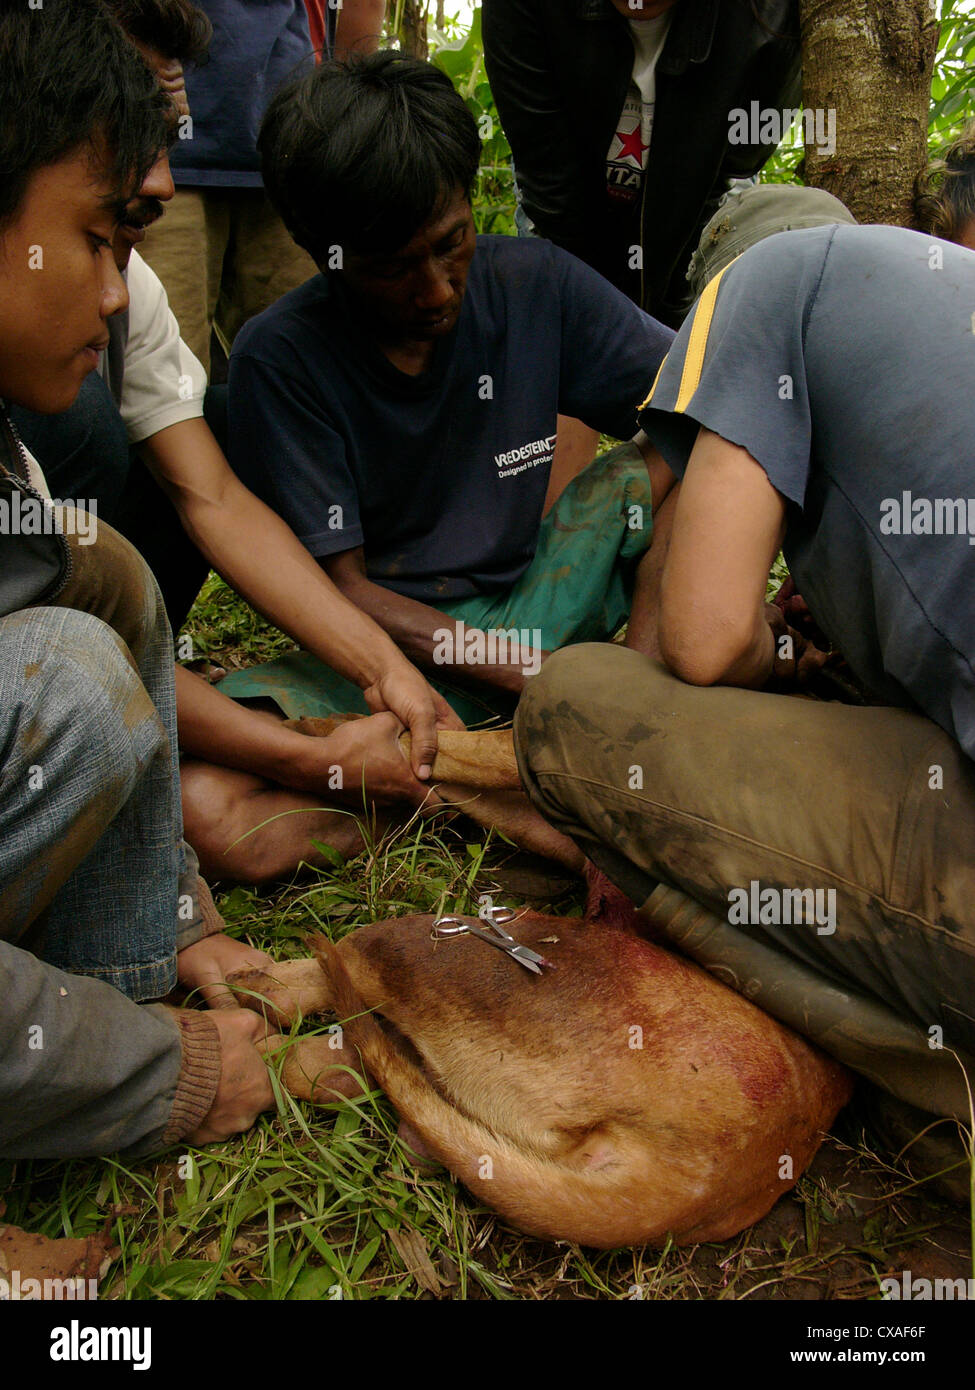 Jungle vets stitch an injured attack-dog after it has fought with a wild boar during a legal pig-baiting contest - Stock Image